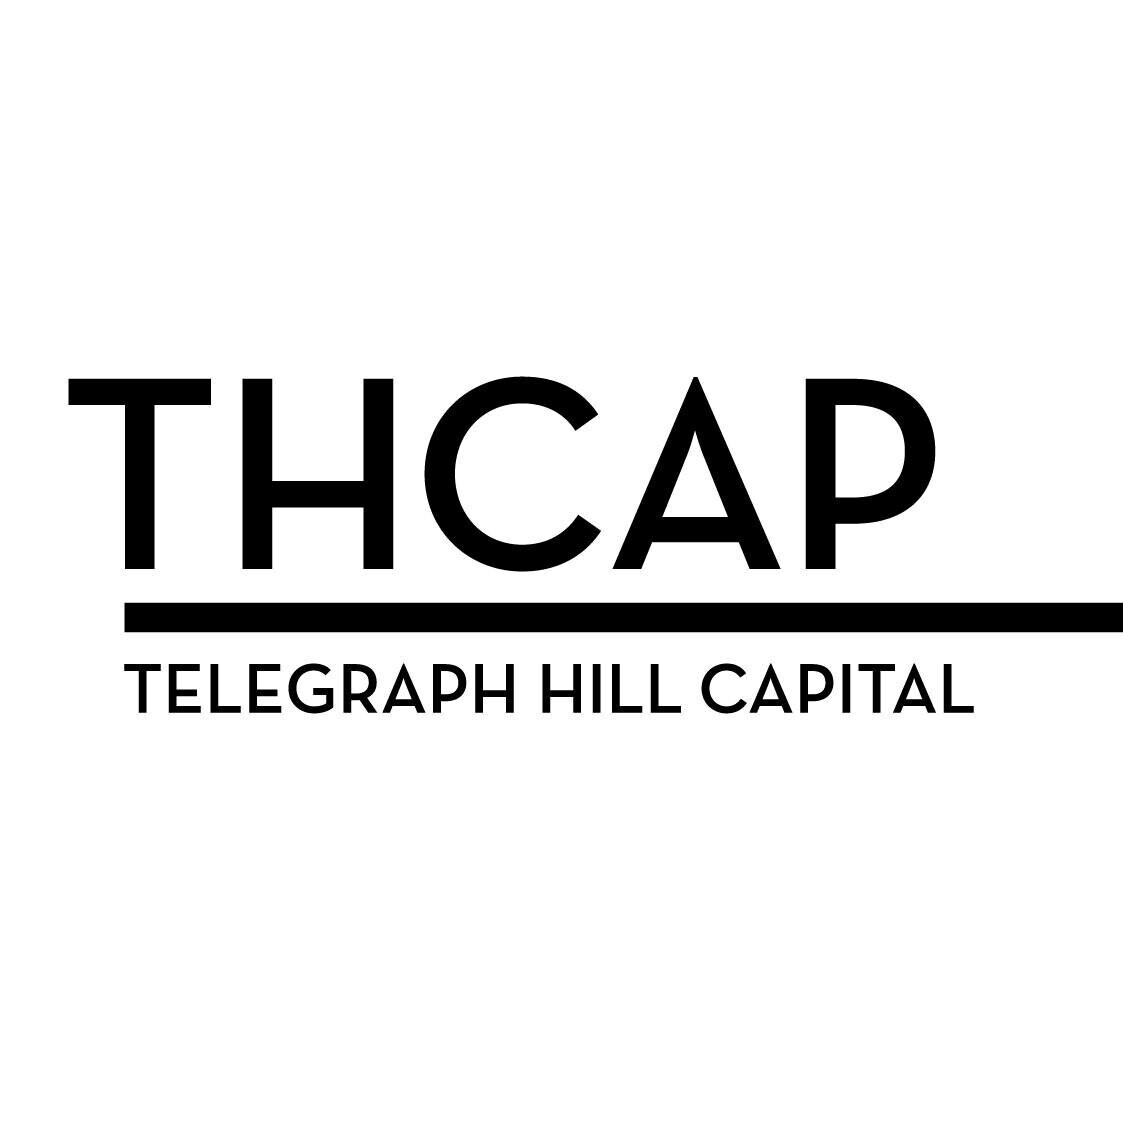 Telegraph Hill Capital